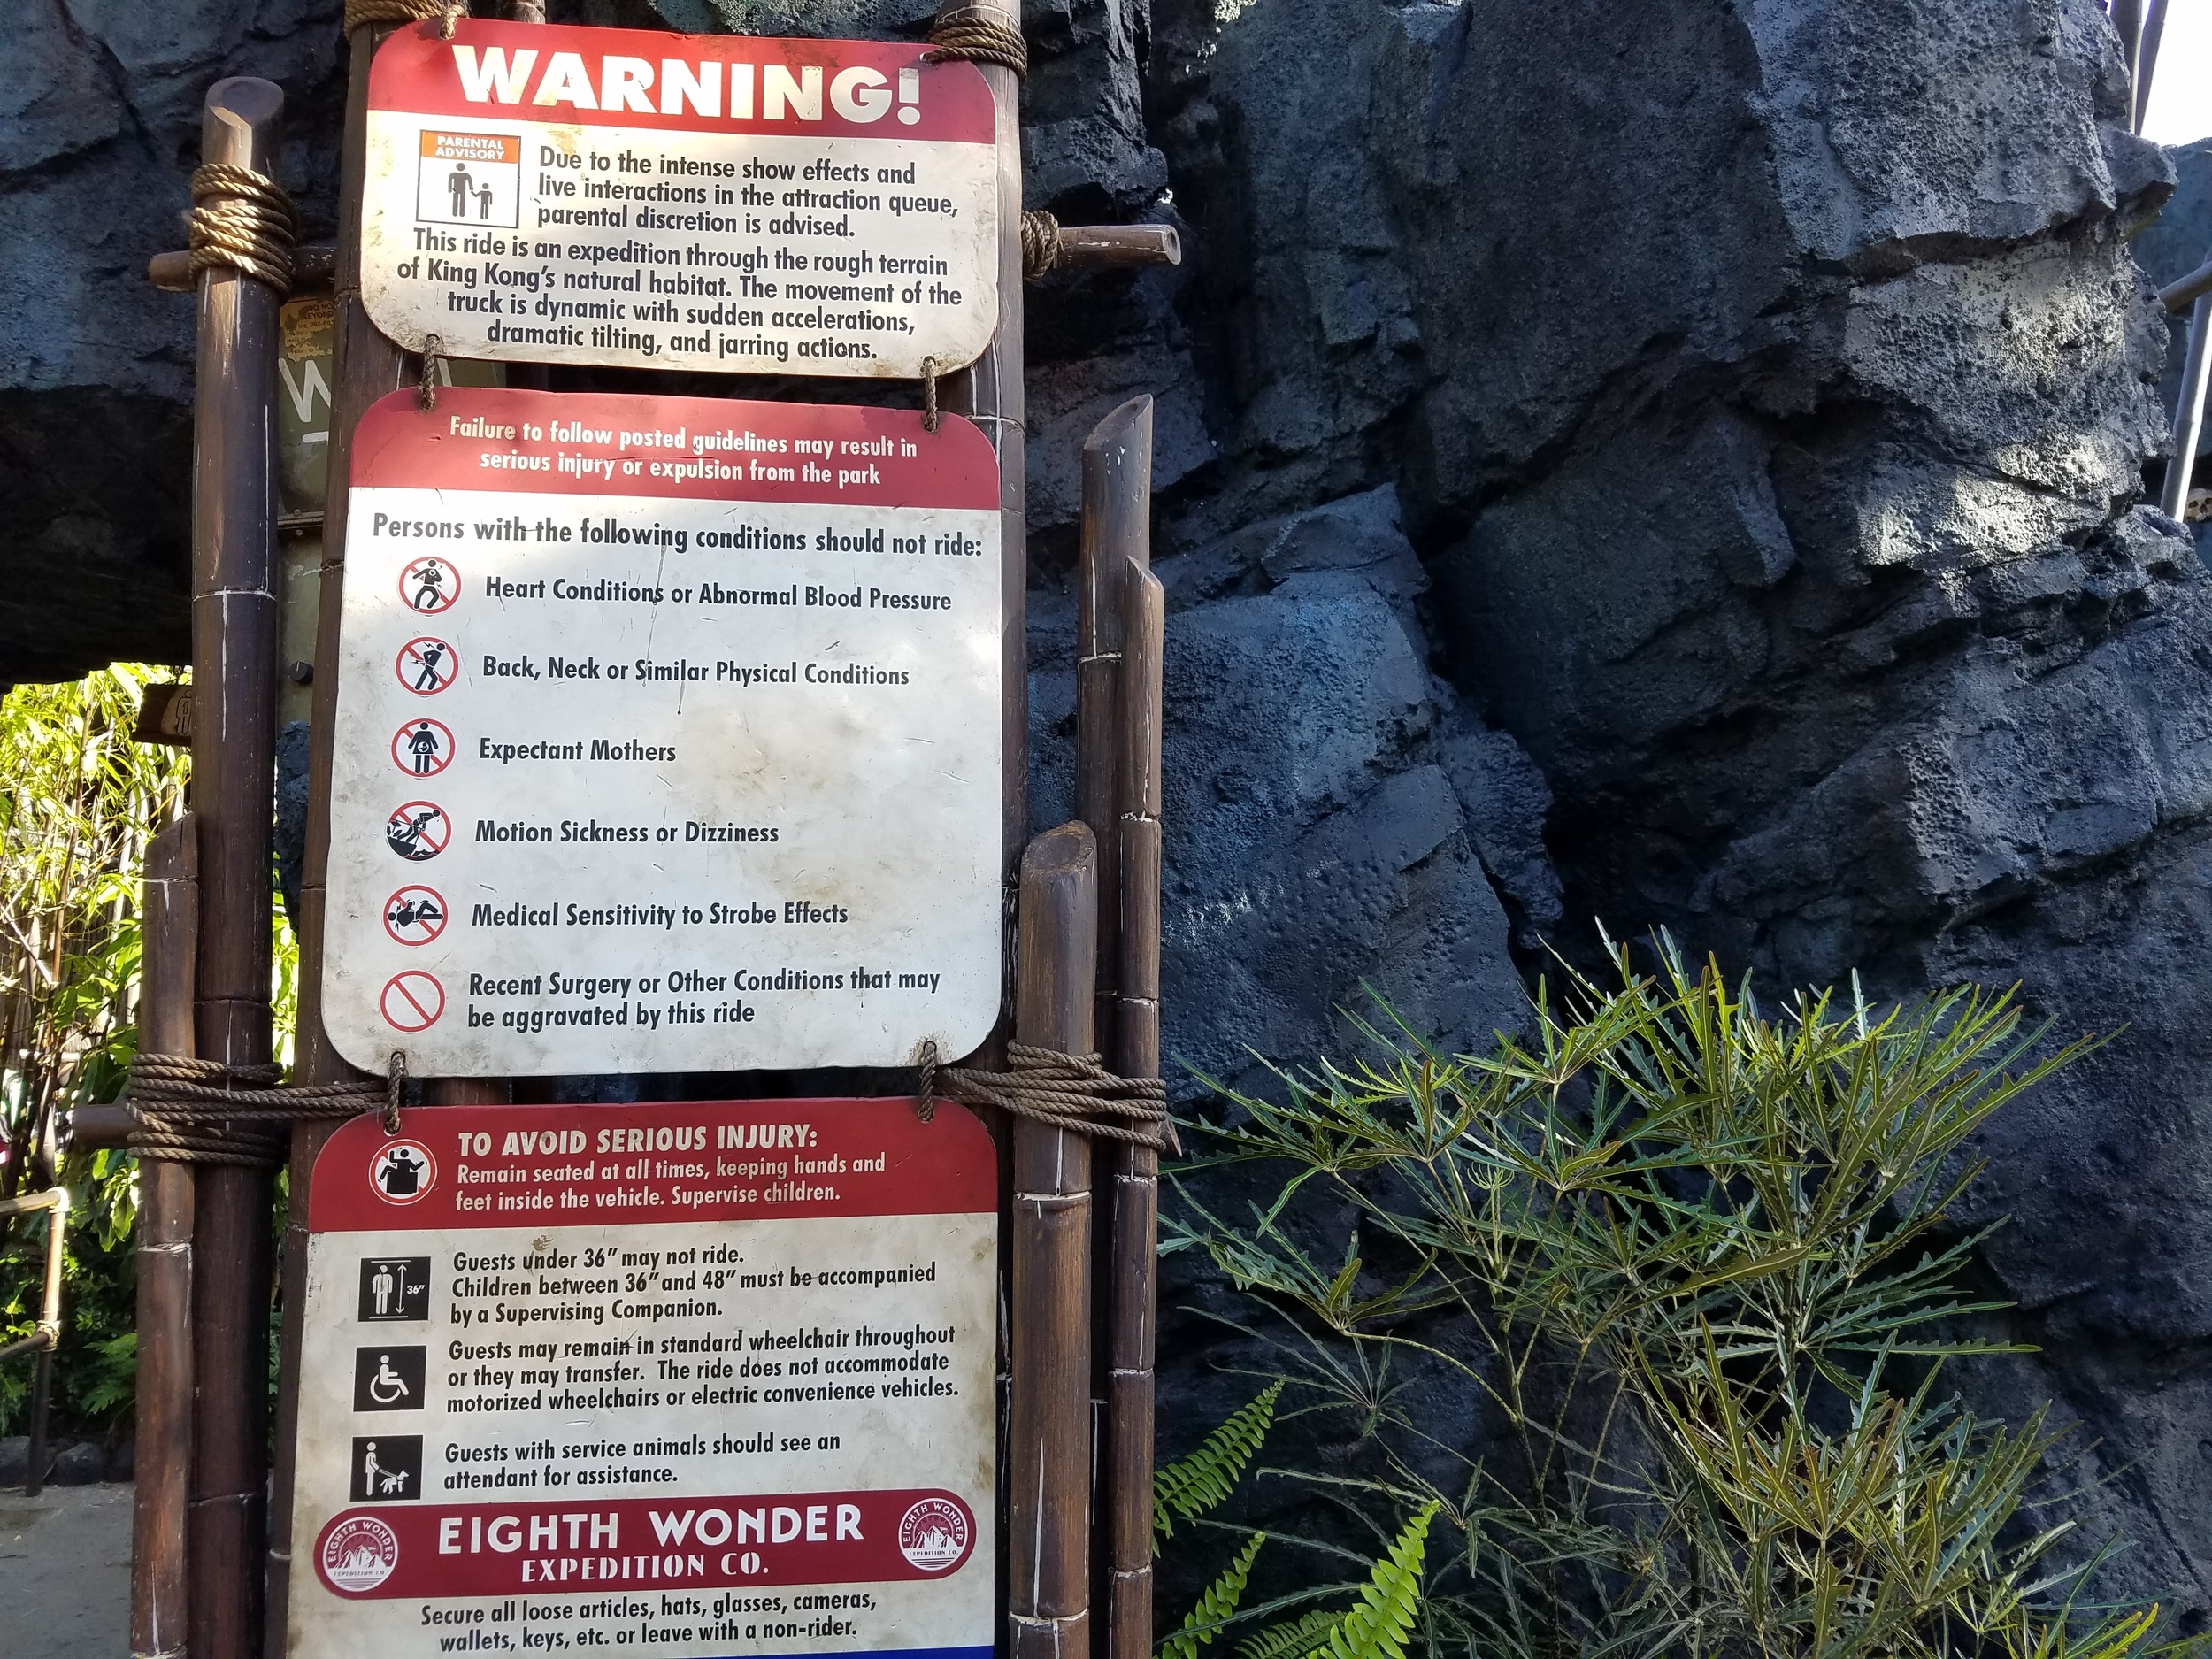 Skull Island: Reign of Kong Warnings and Information